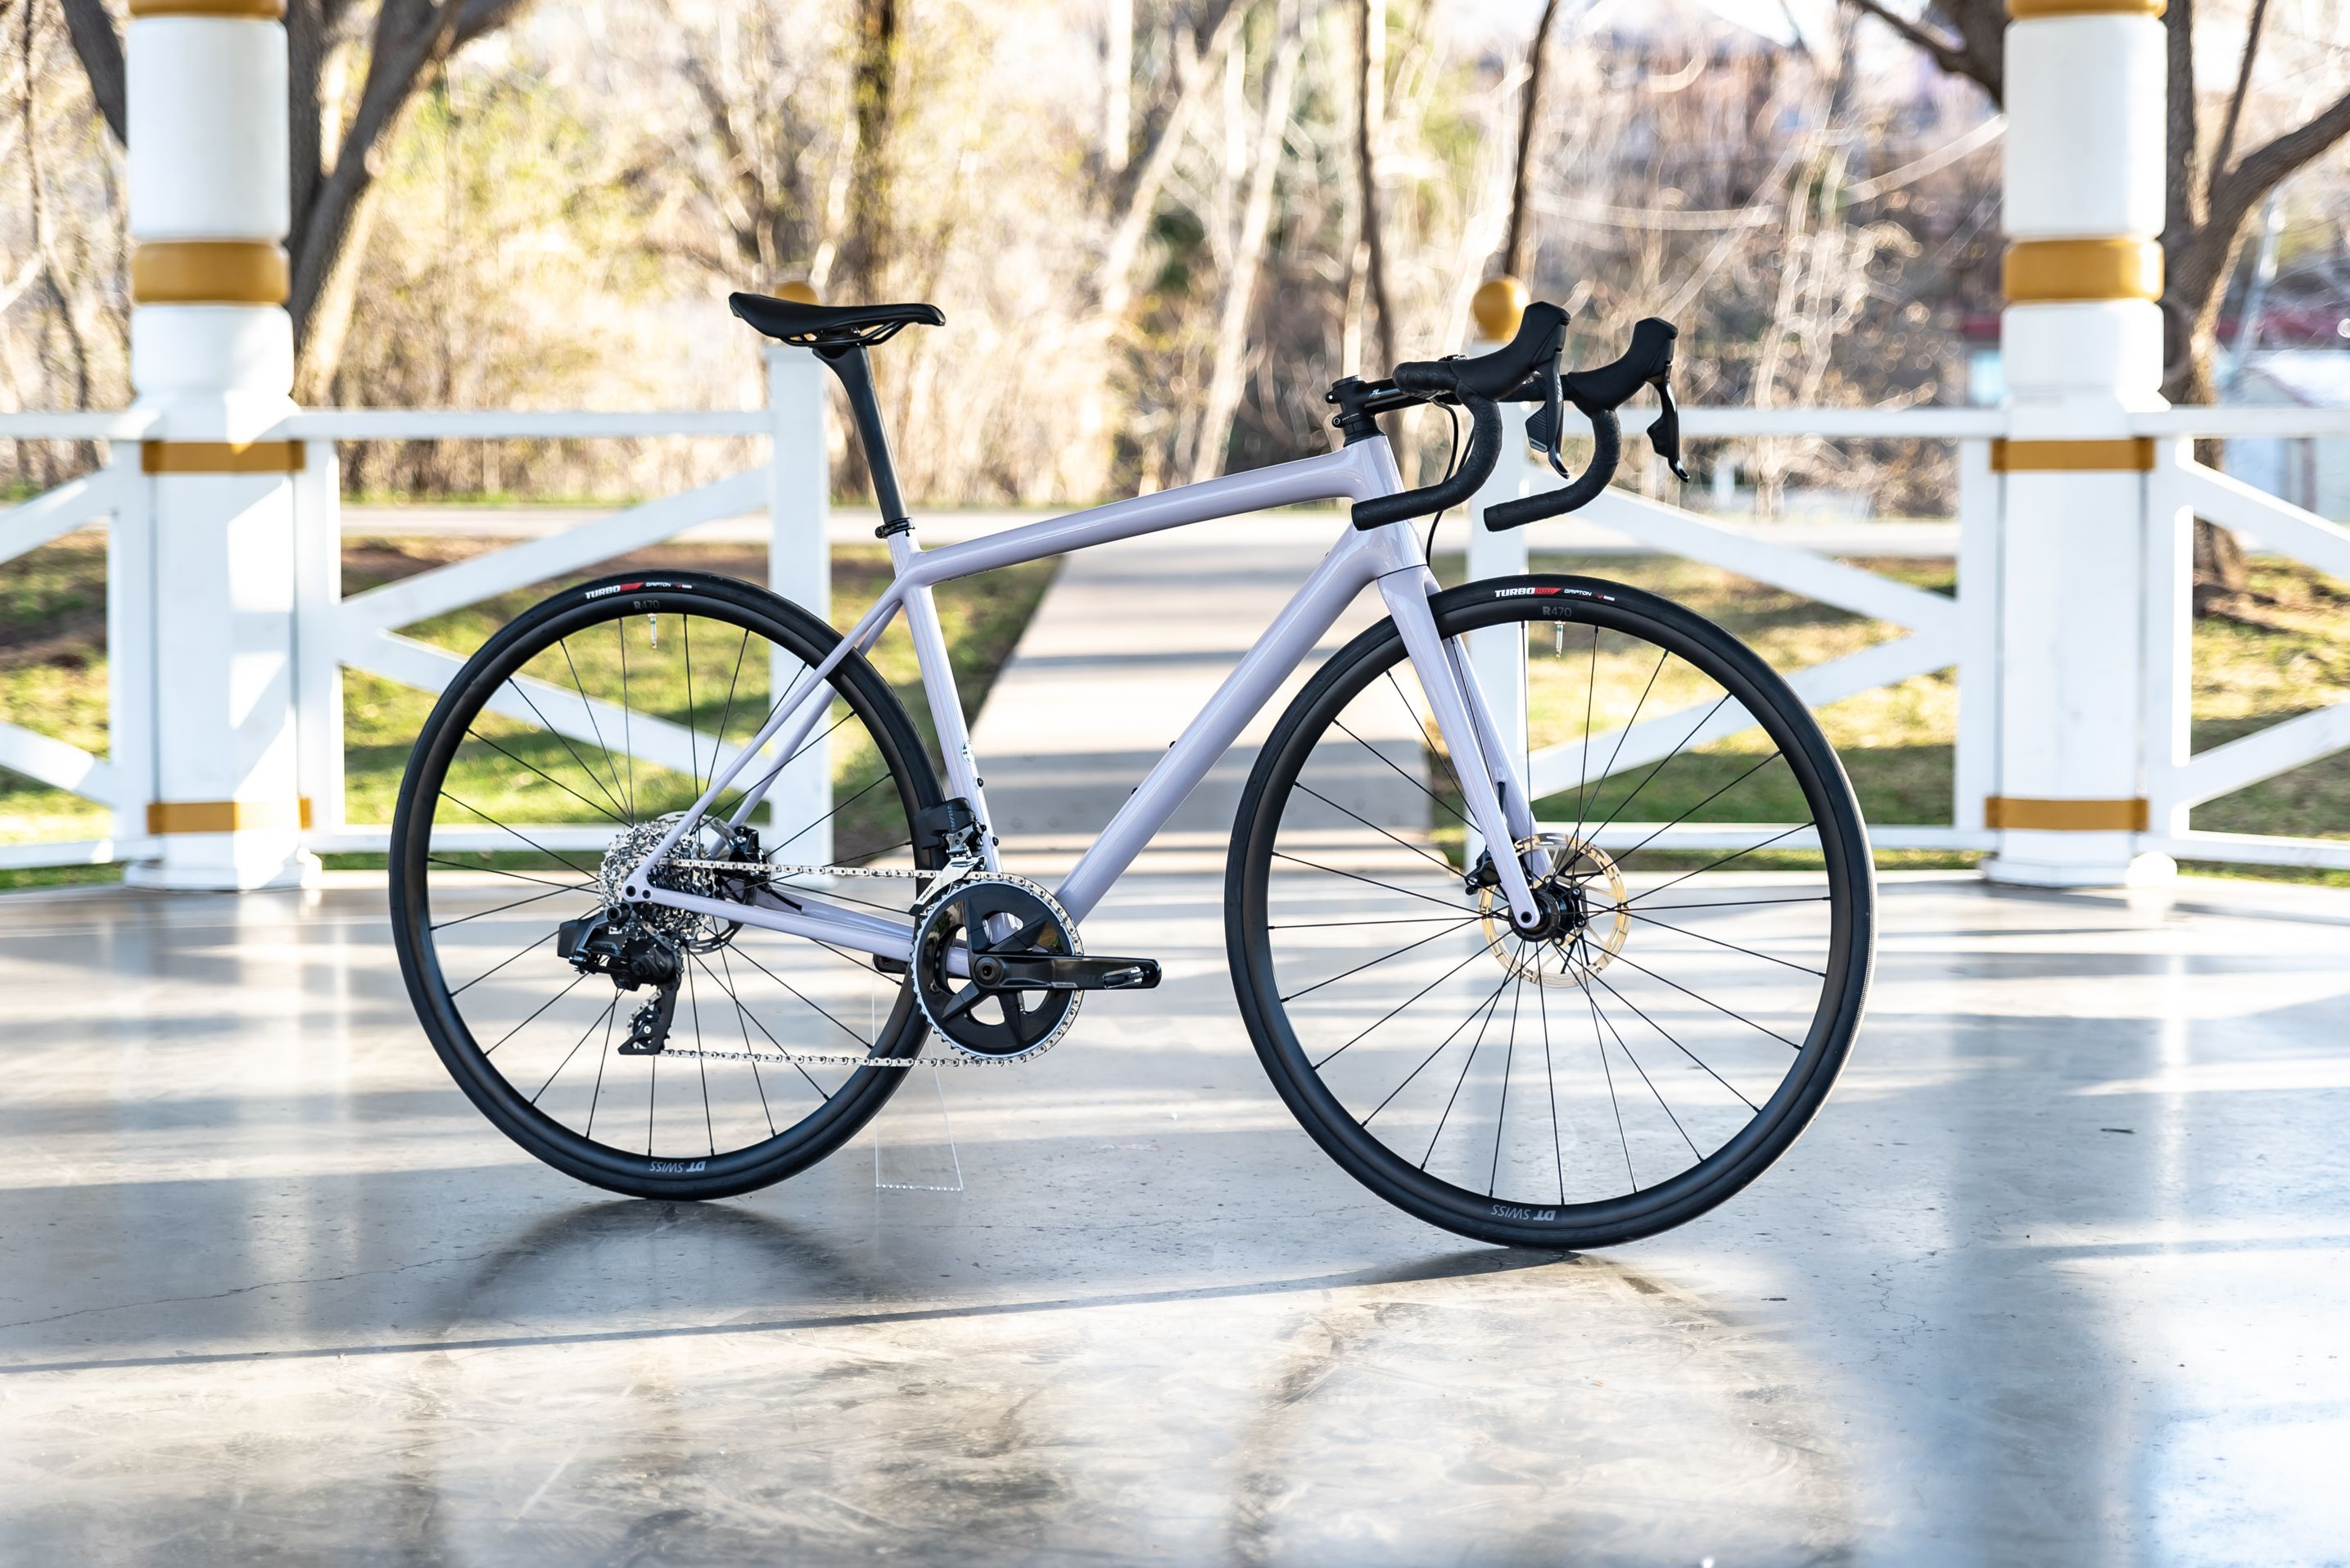 I rode Rival AXS on one of the new bikes arriving in shops today equipped with the group: A Specialized Aethos Comp Rival AXS.